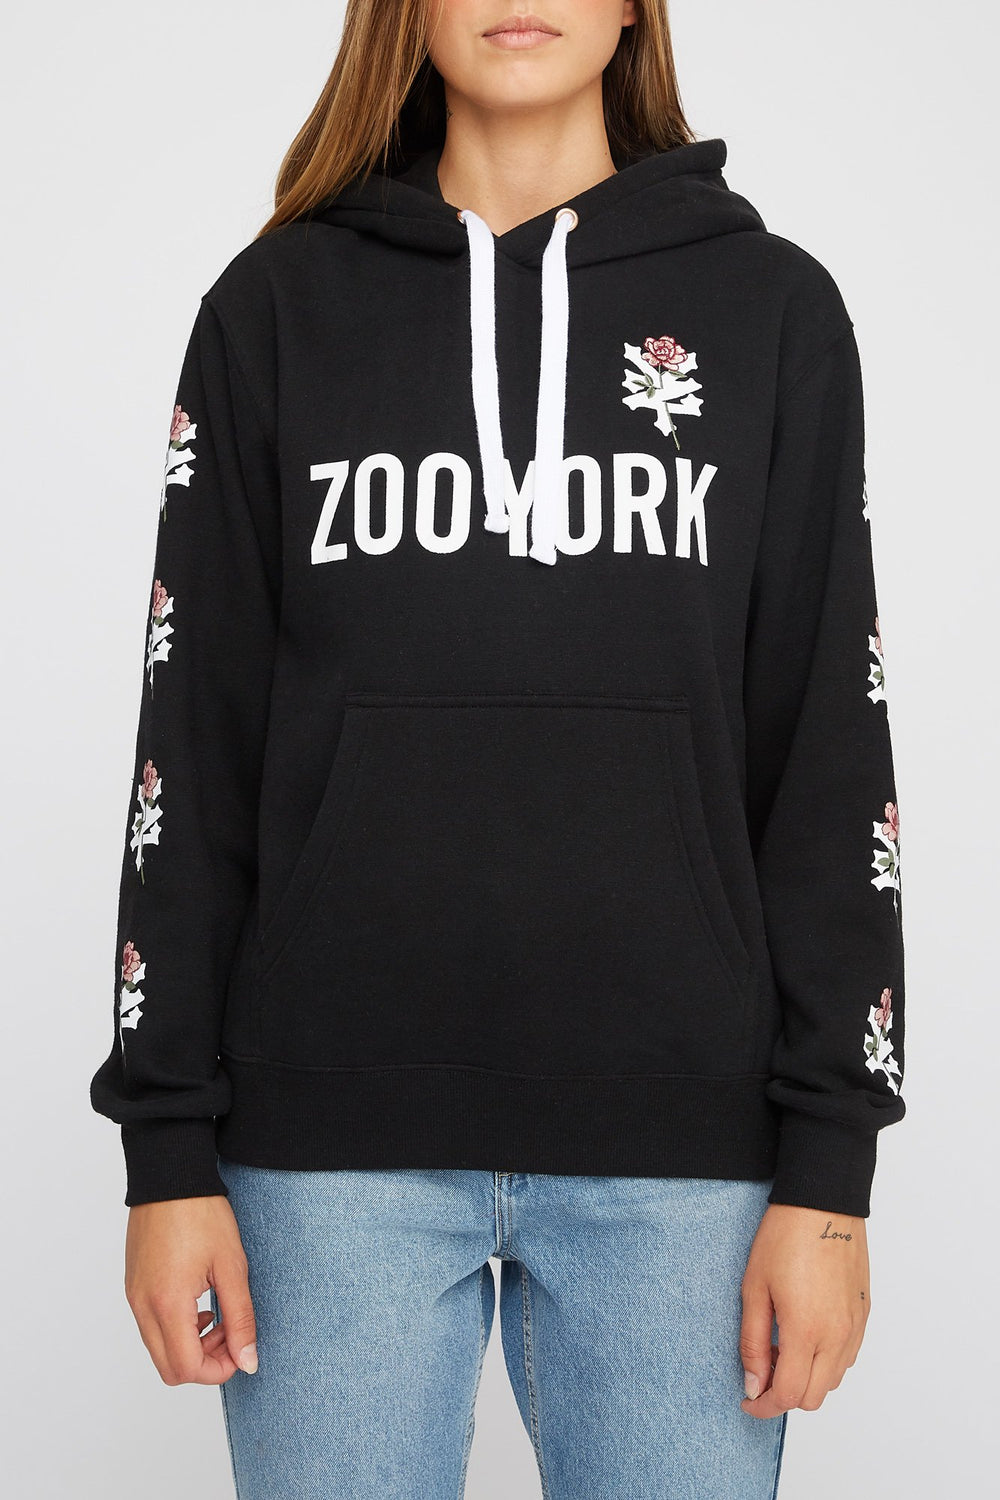 Zoo York Womens Embroidered Rose Logo Hoodie Black